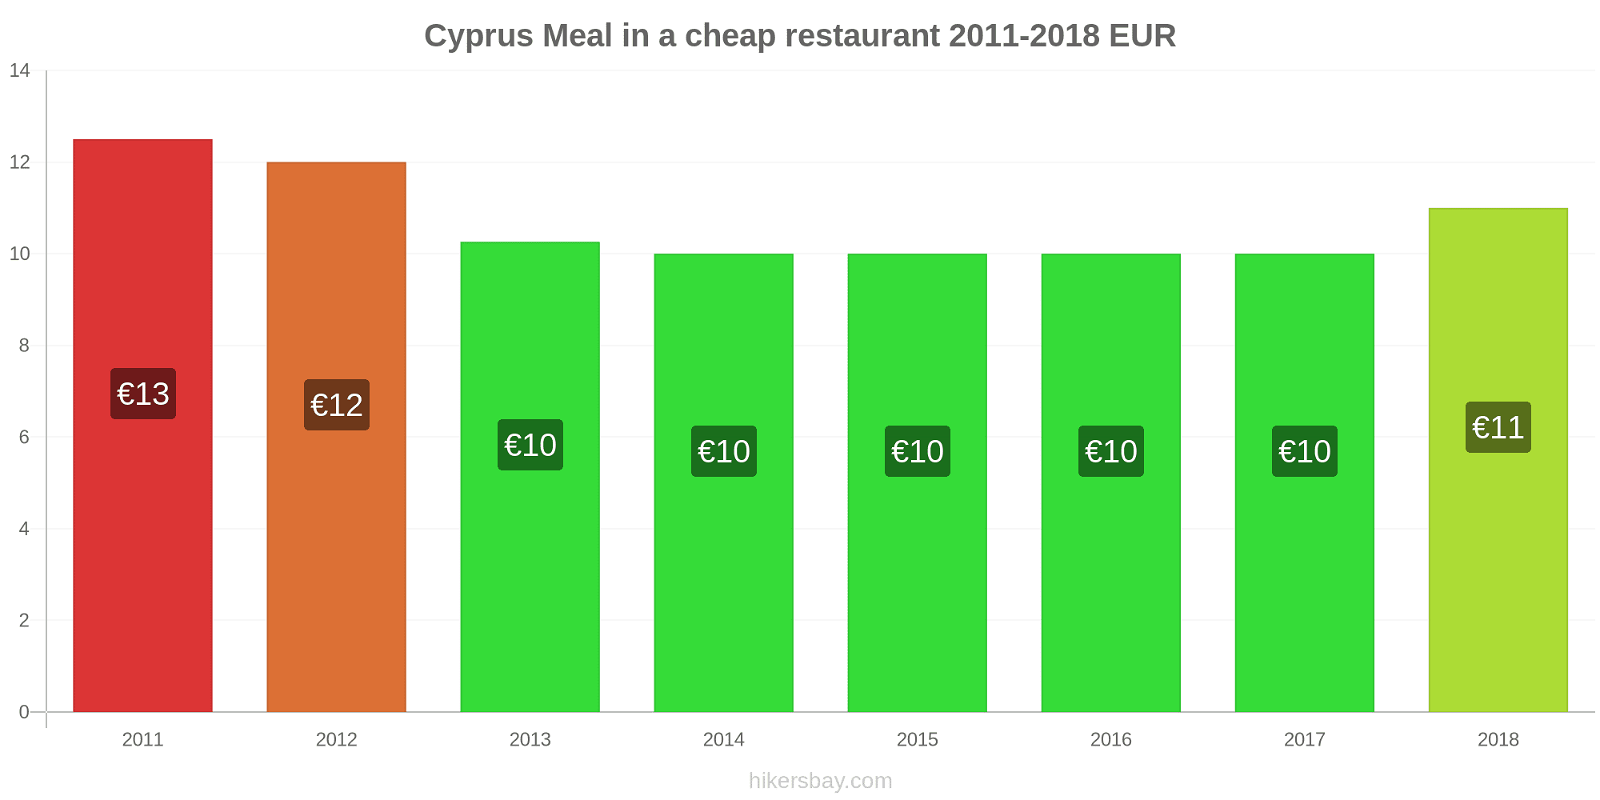 Cyprus price changes Meal in a cheap restaurant hikersbay.com